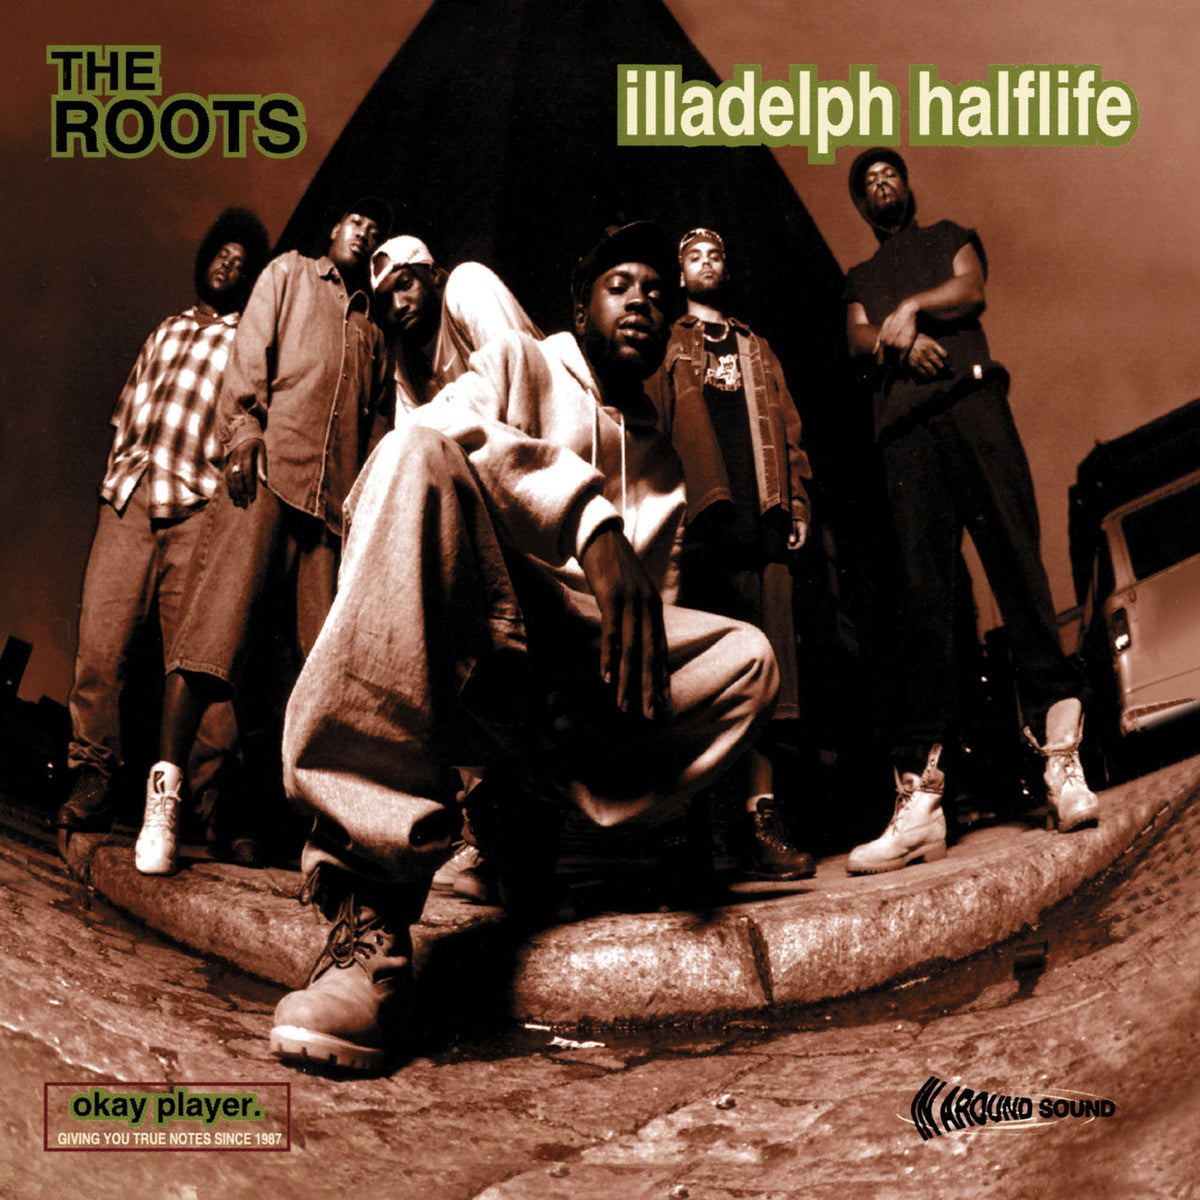 The Roots Quot Illadelph Halflife Quot 2xlp 20th Anniversary Vinyl